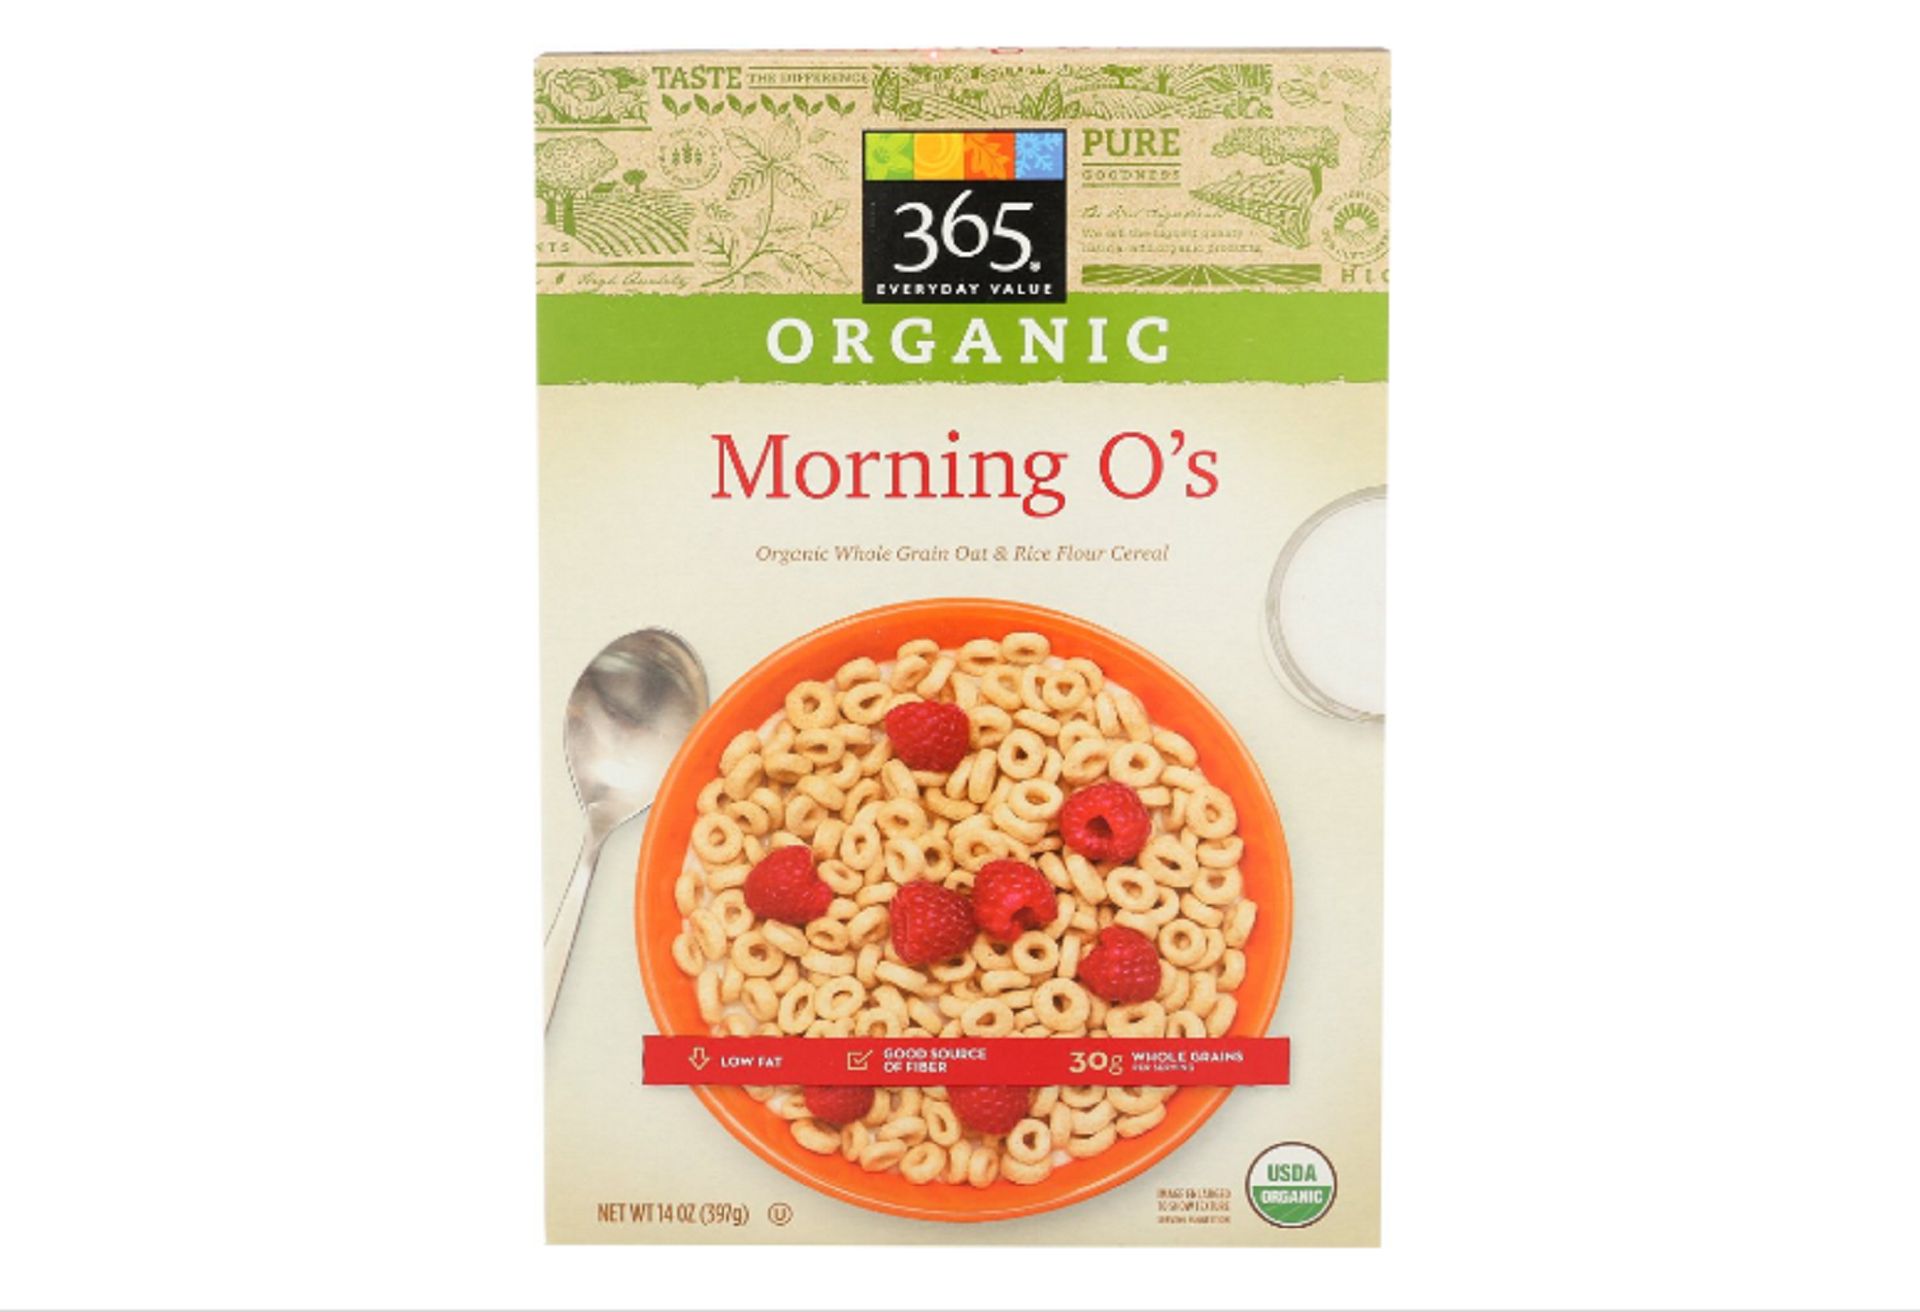 365 everyday value organic morning o's cereal